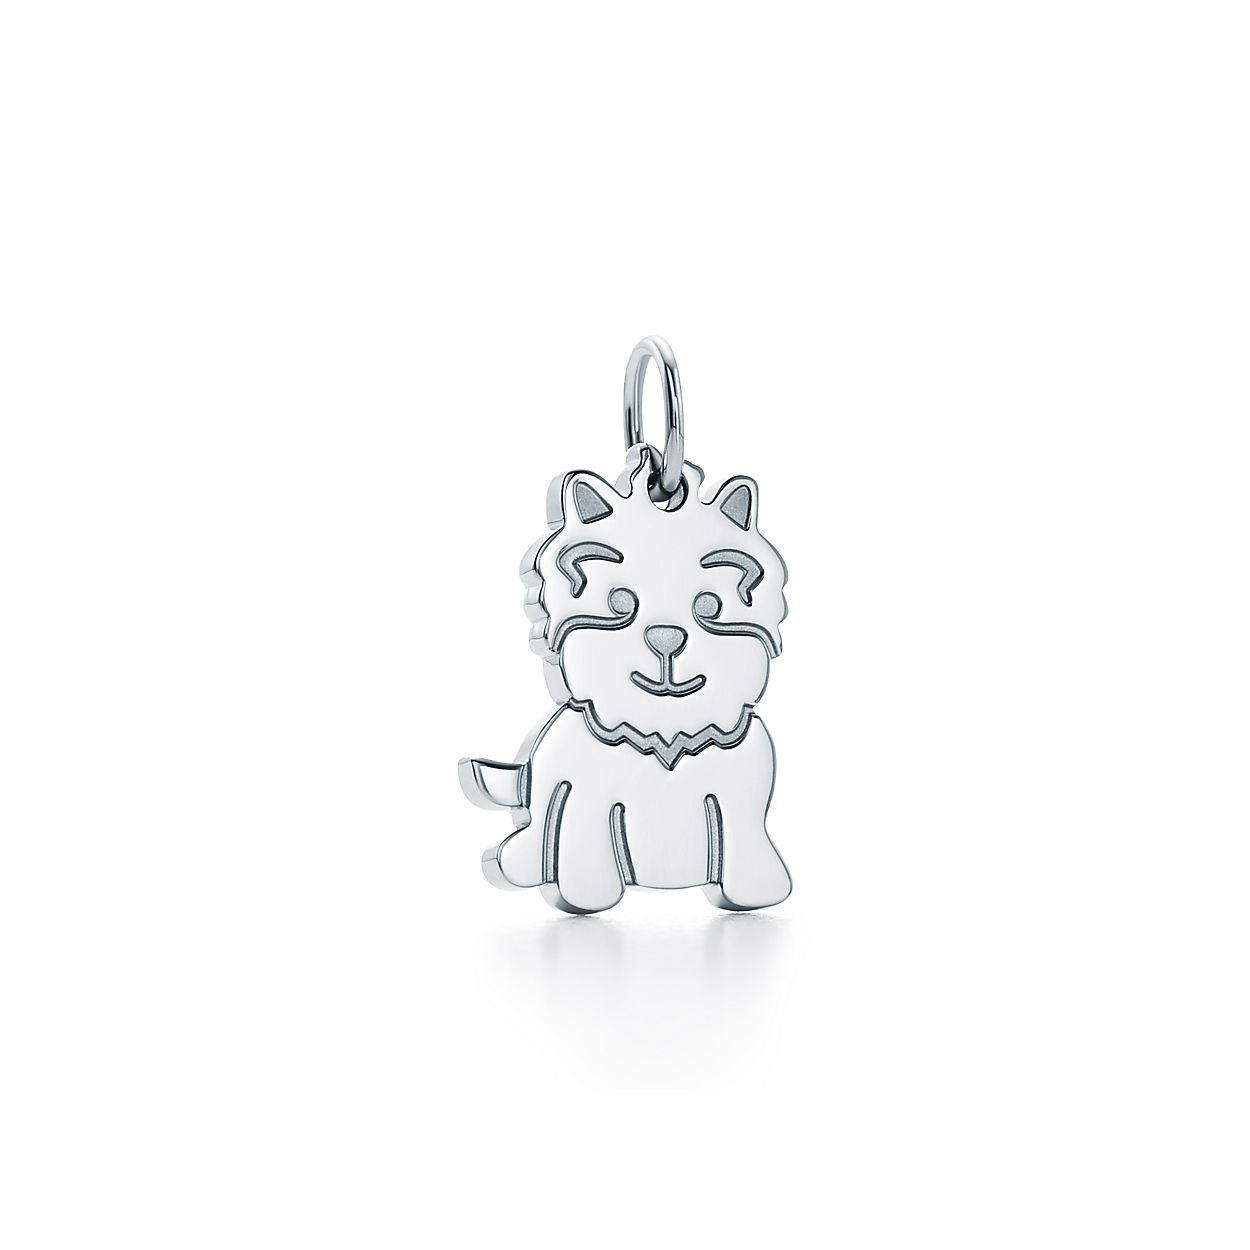 Tiffany charms new yorkie charm in sterling silver tiffany co tiffany charmsnew yorkie charm aloadofball Choice Image